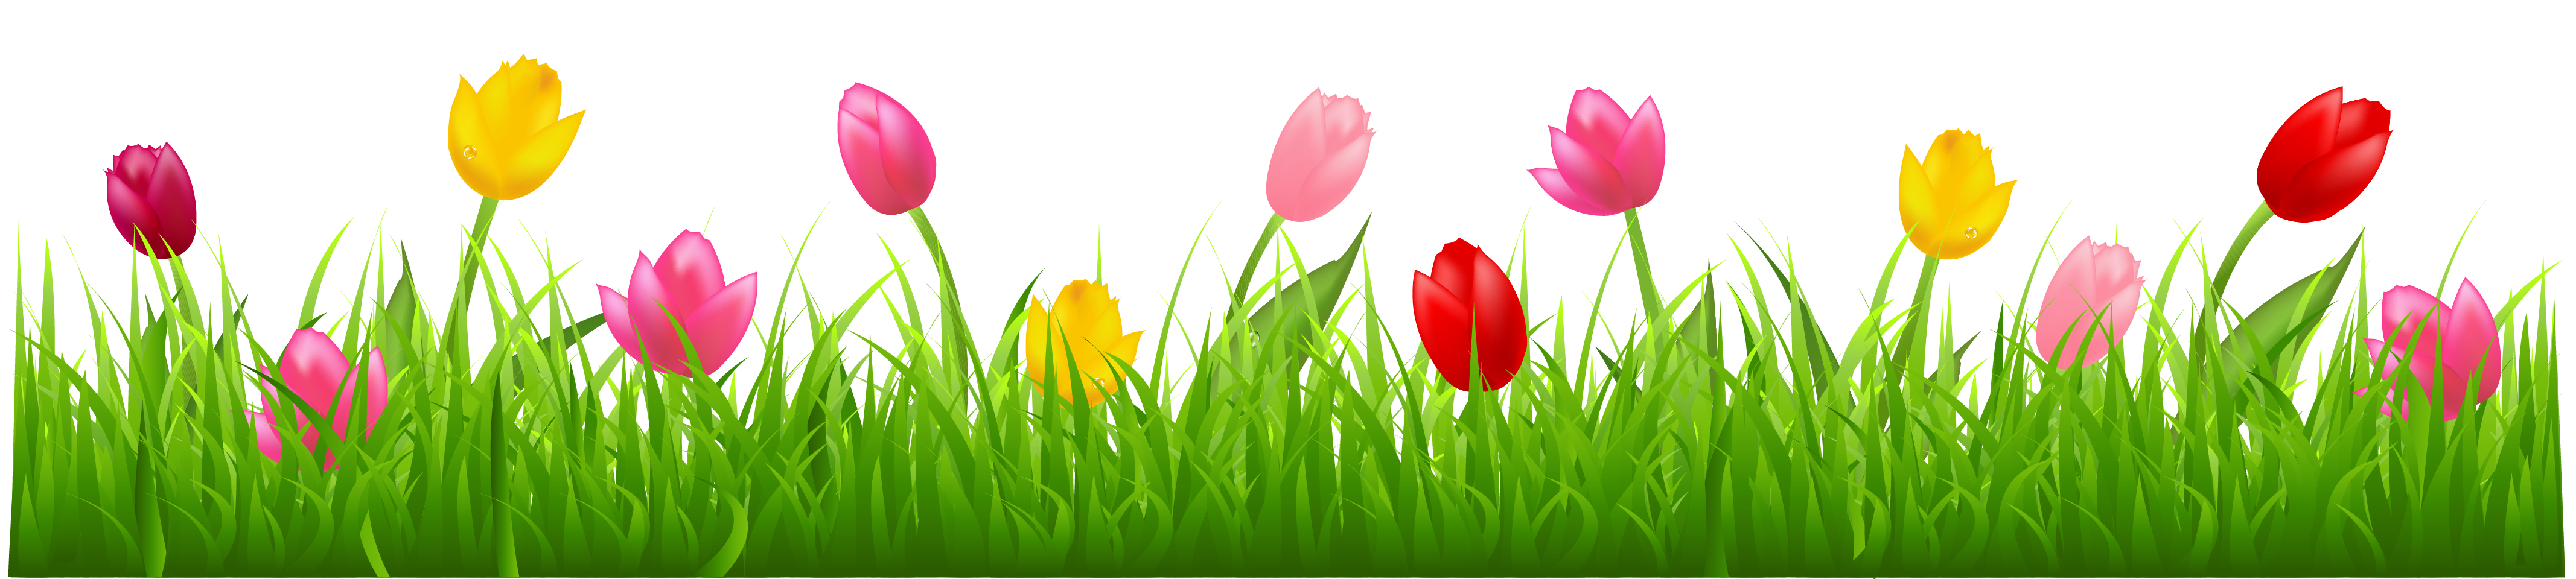 grass with colorful tulips png clipart | spring | pinterest